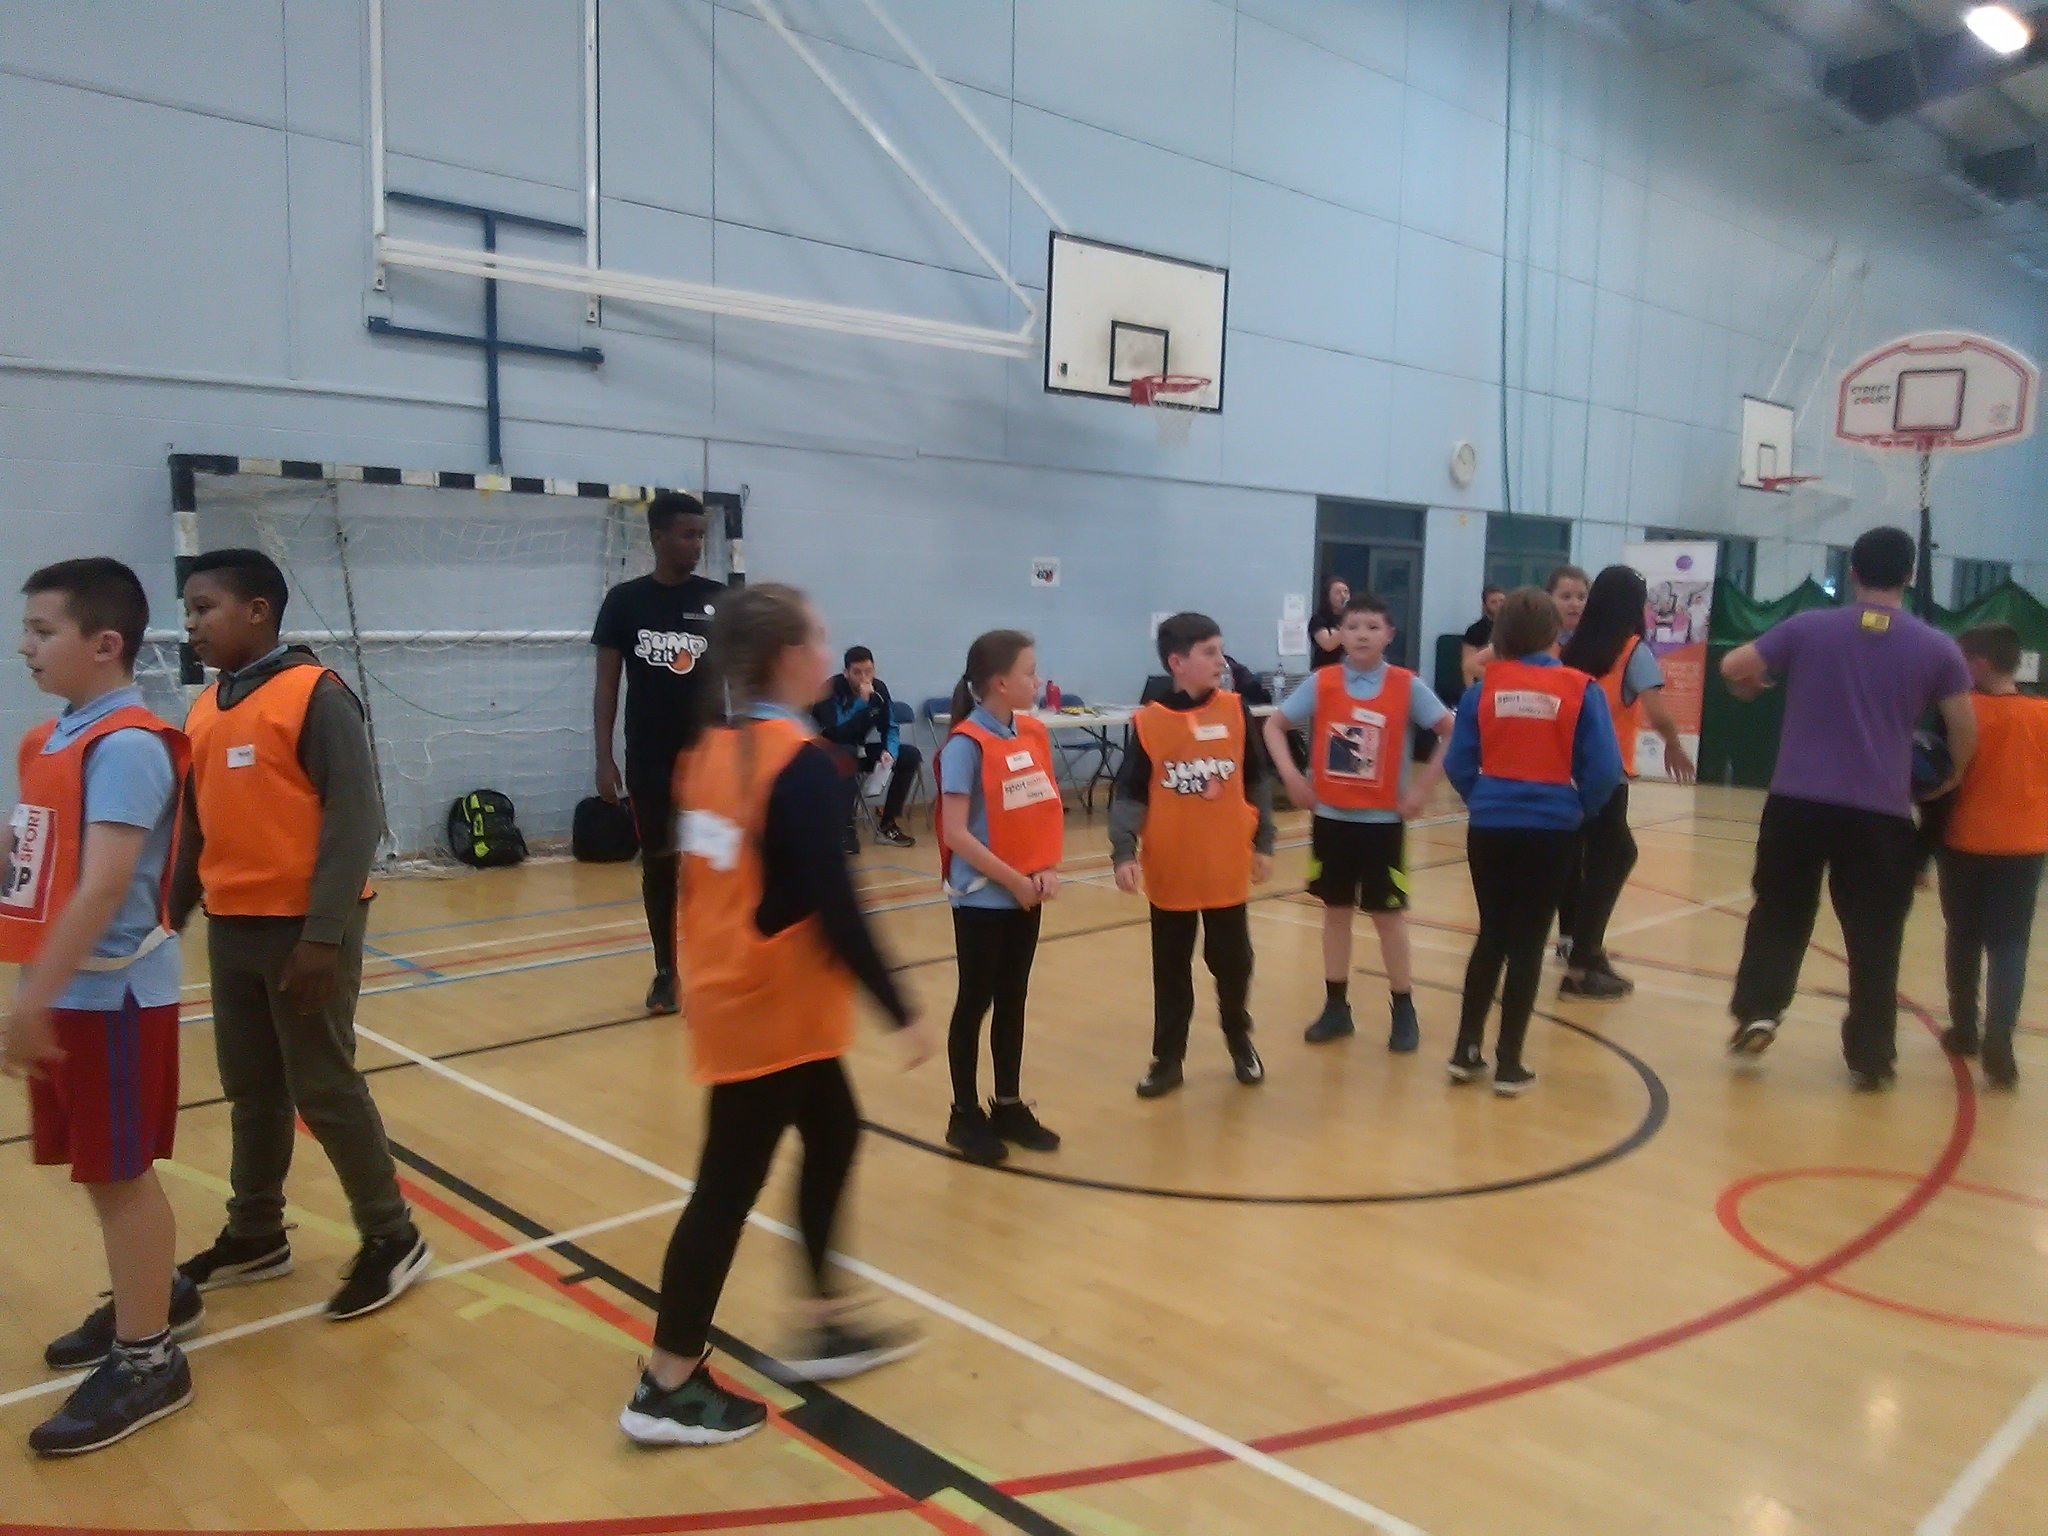 Our P7 teams warming up at the @Jump2it_SSF basketball tournament @rocksglasgow @ActiveSchoolsSL https://t.co/vOVBAD5W8z